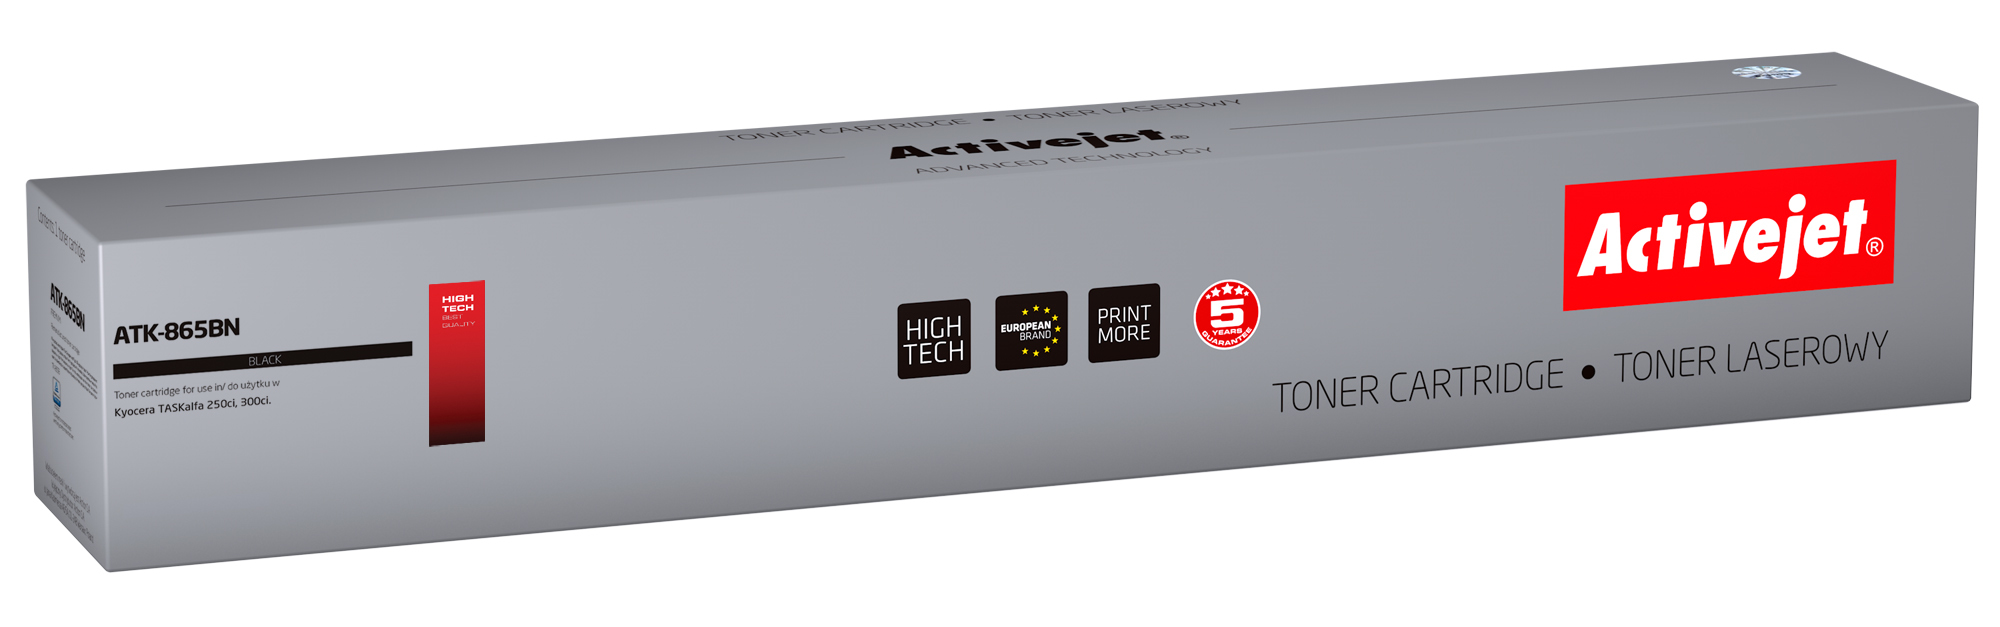 ActiveJet toner do Kyocera  TK-865K new ATK-865BN